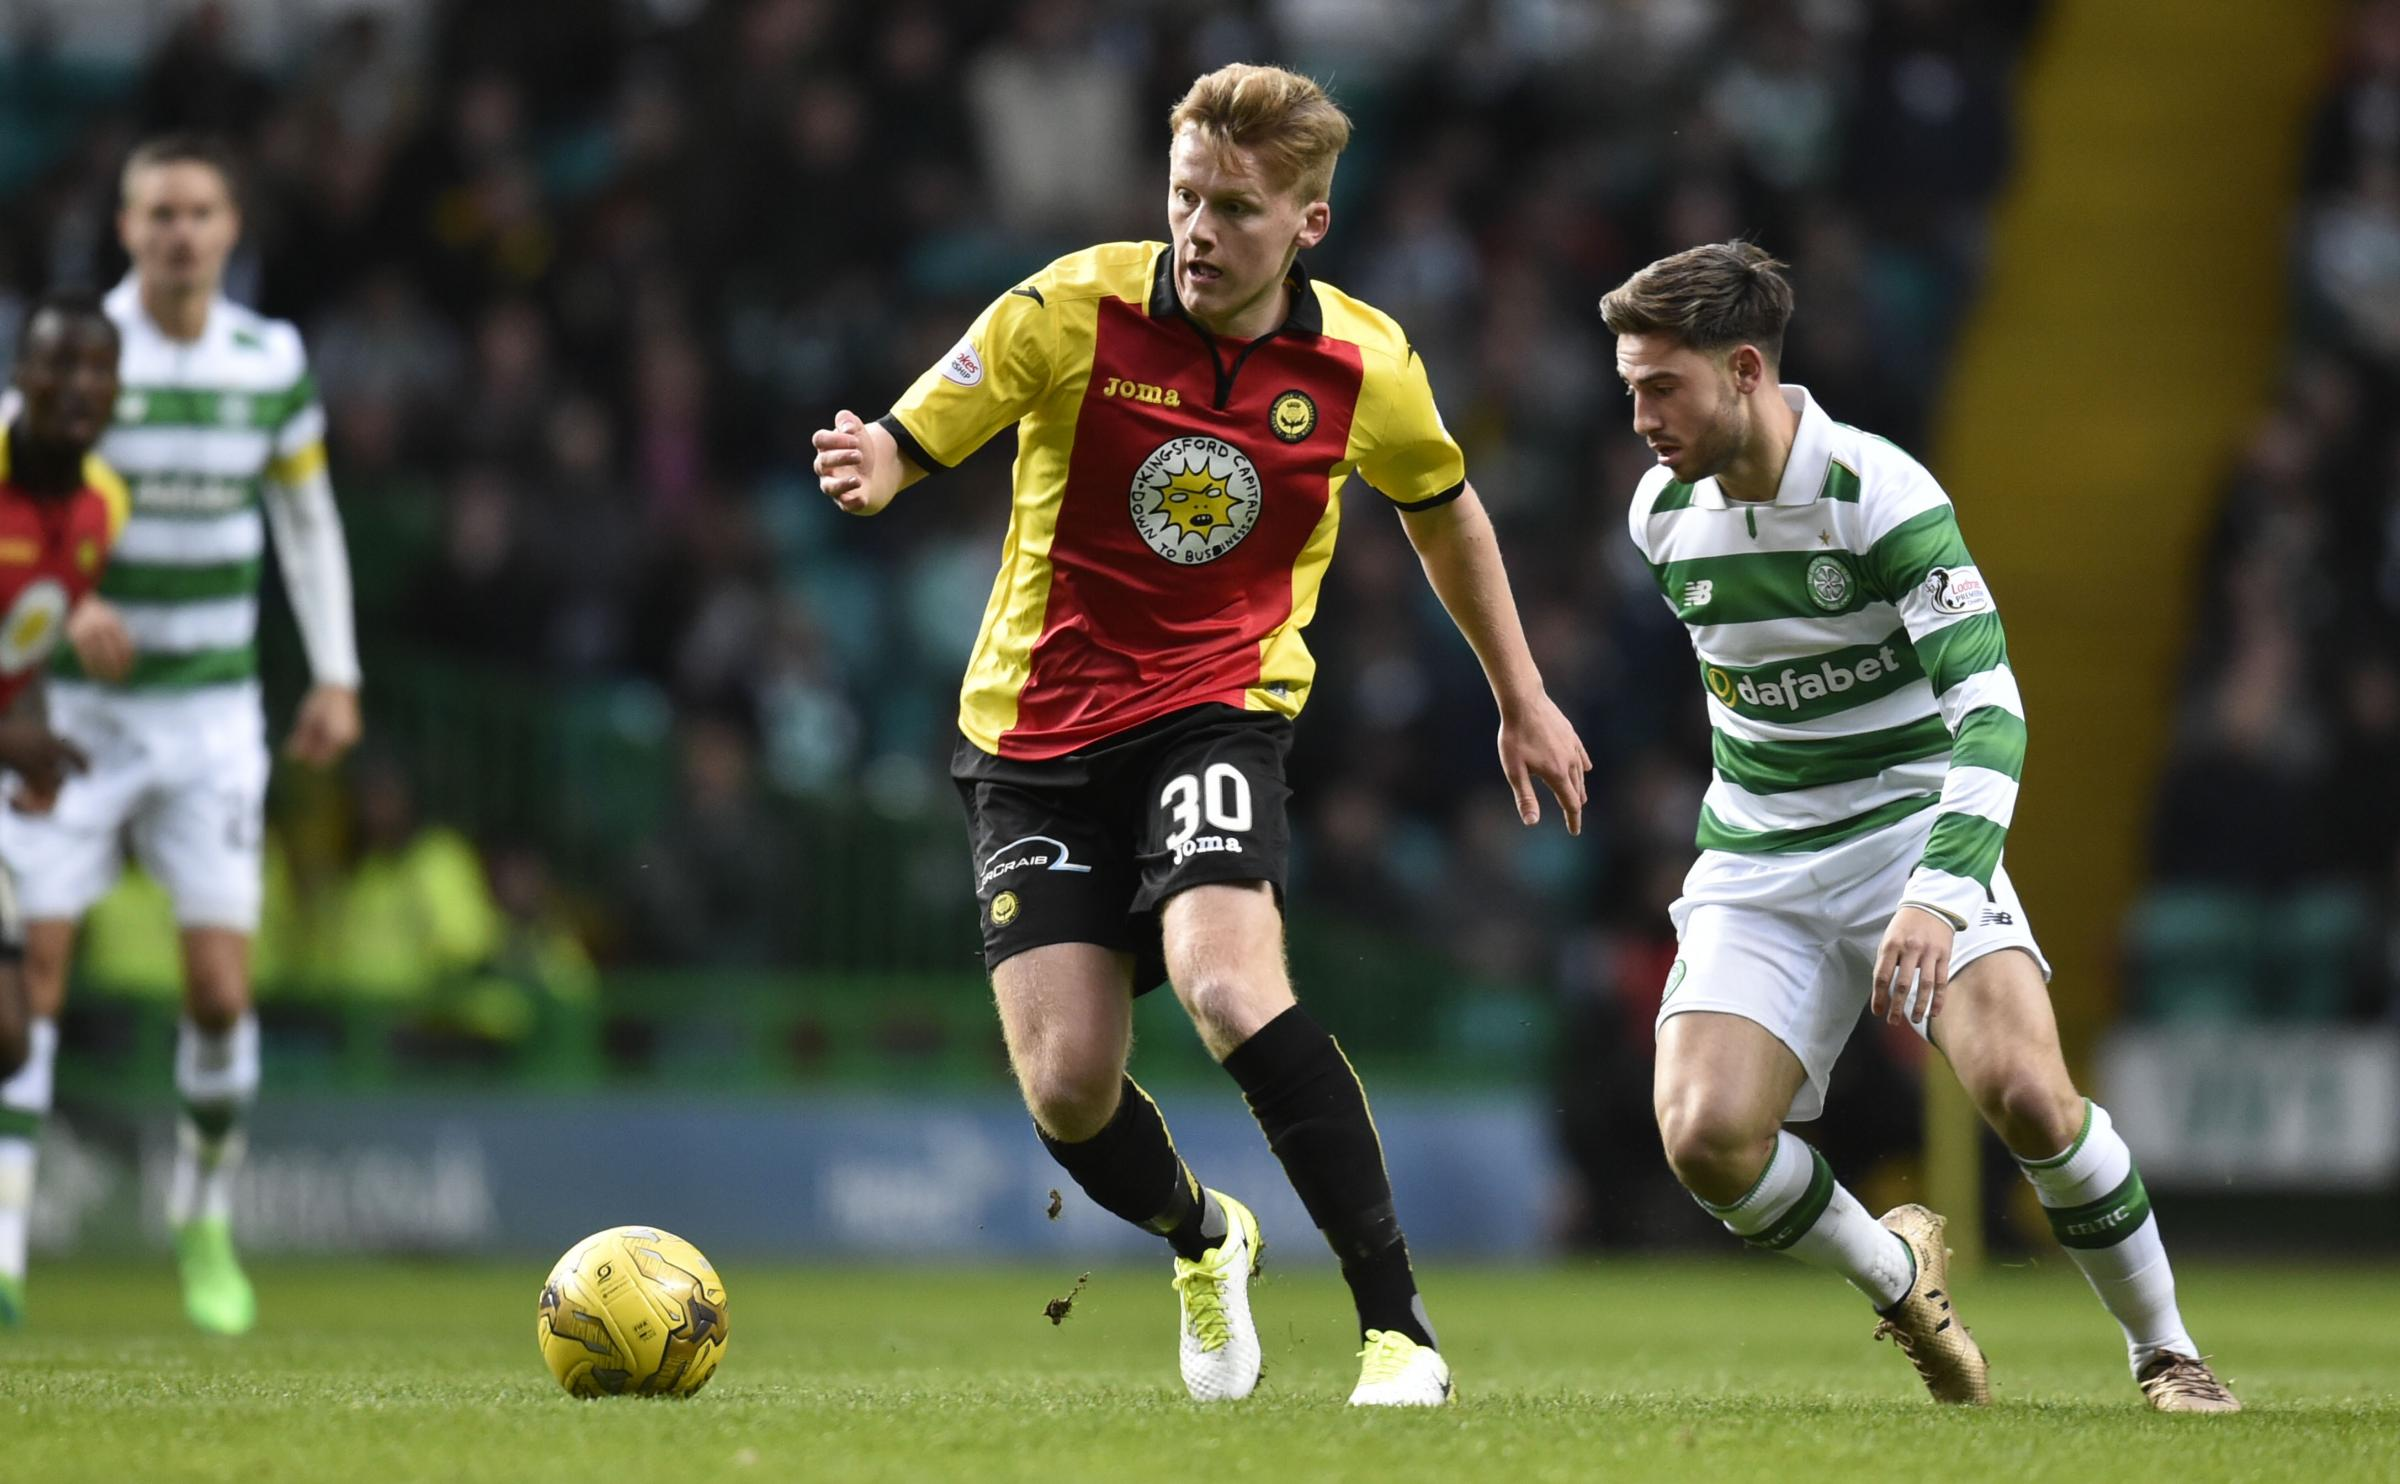 Dream debut: Andy McCarthy made his first league appearance for Partick Thistle in last season's draw at Celtic Park.